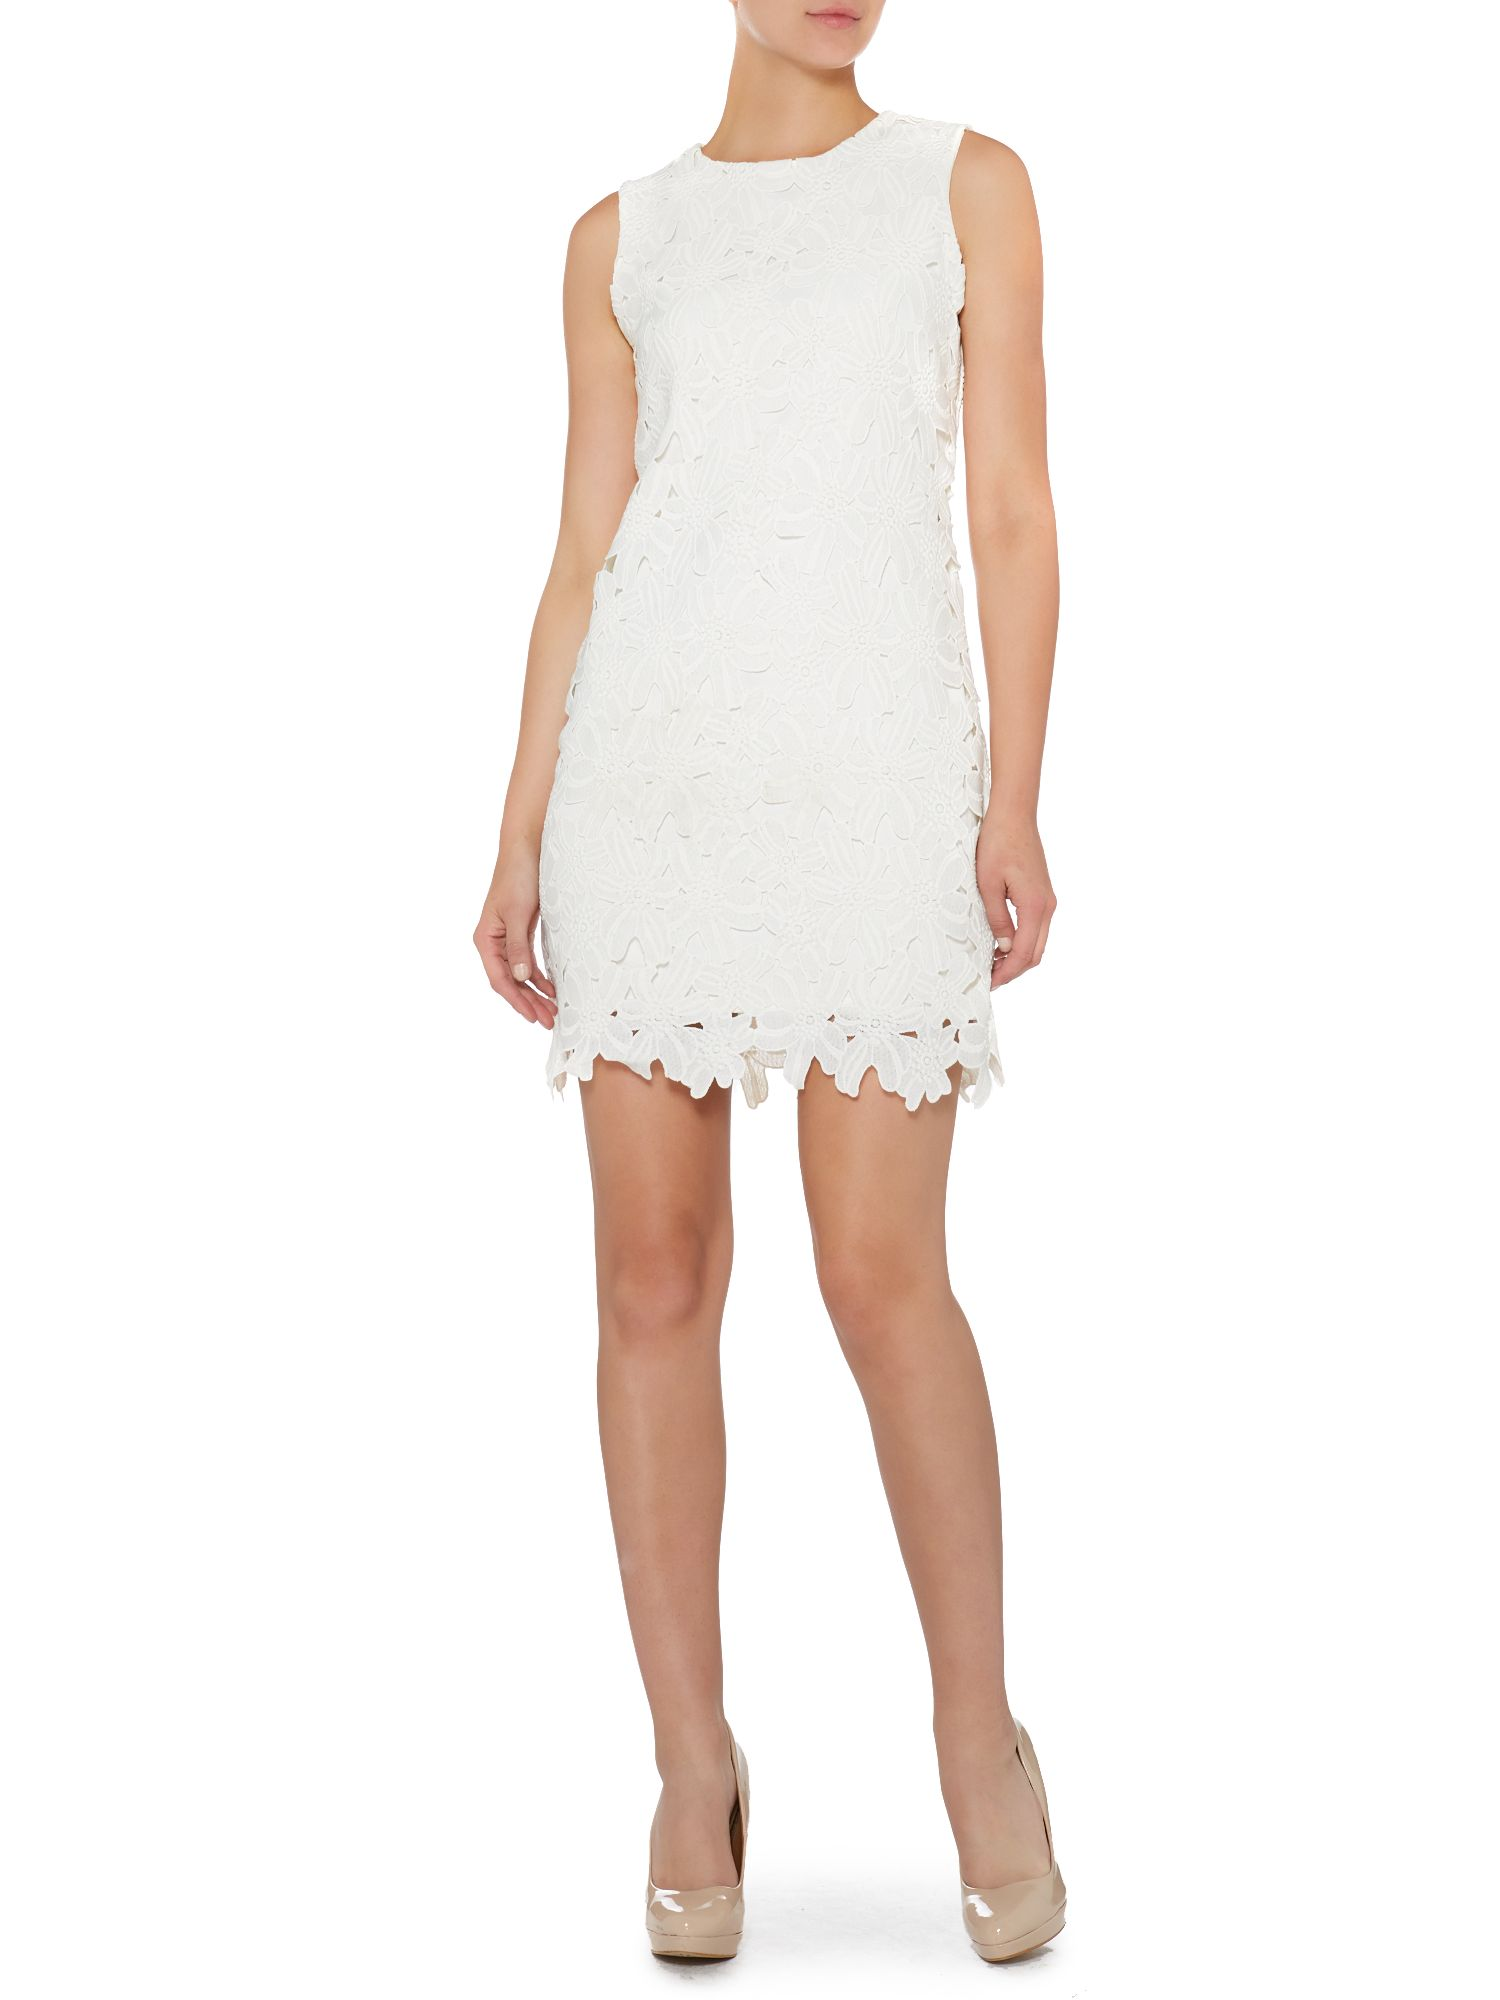 Lace cut shift dress